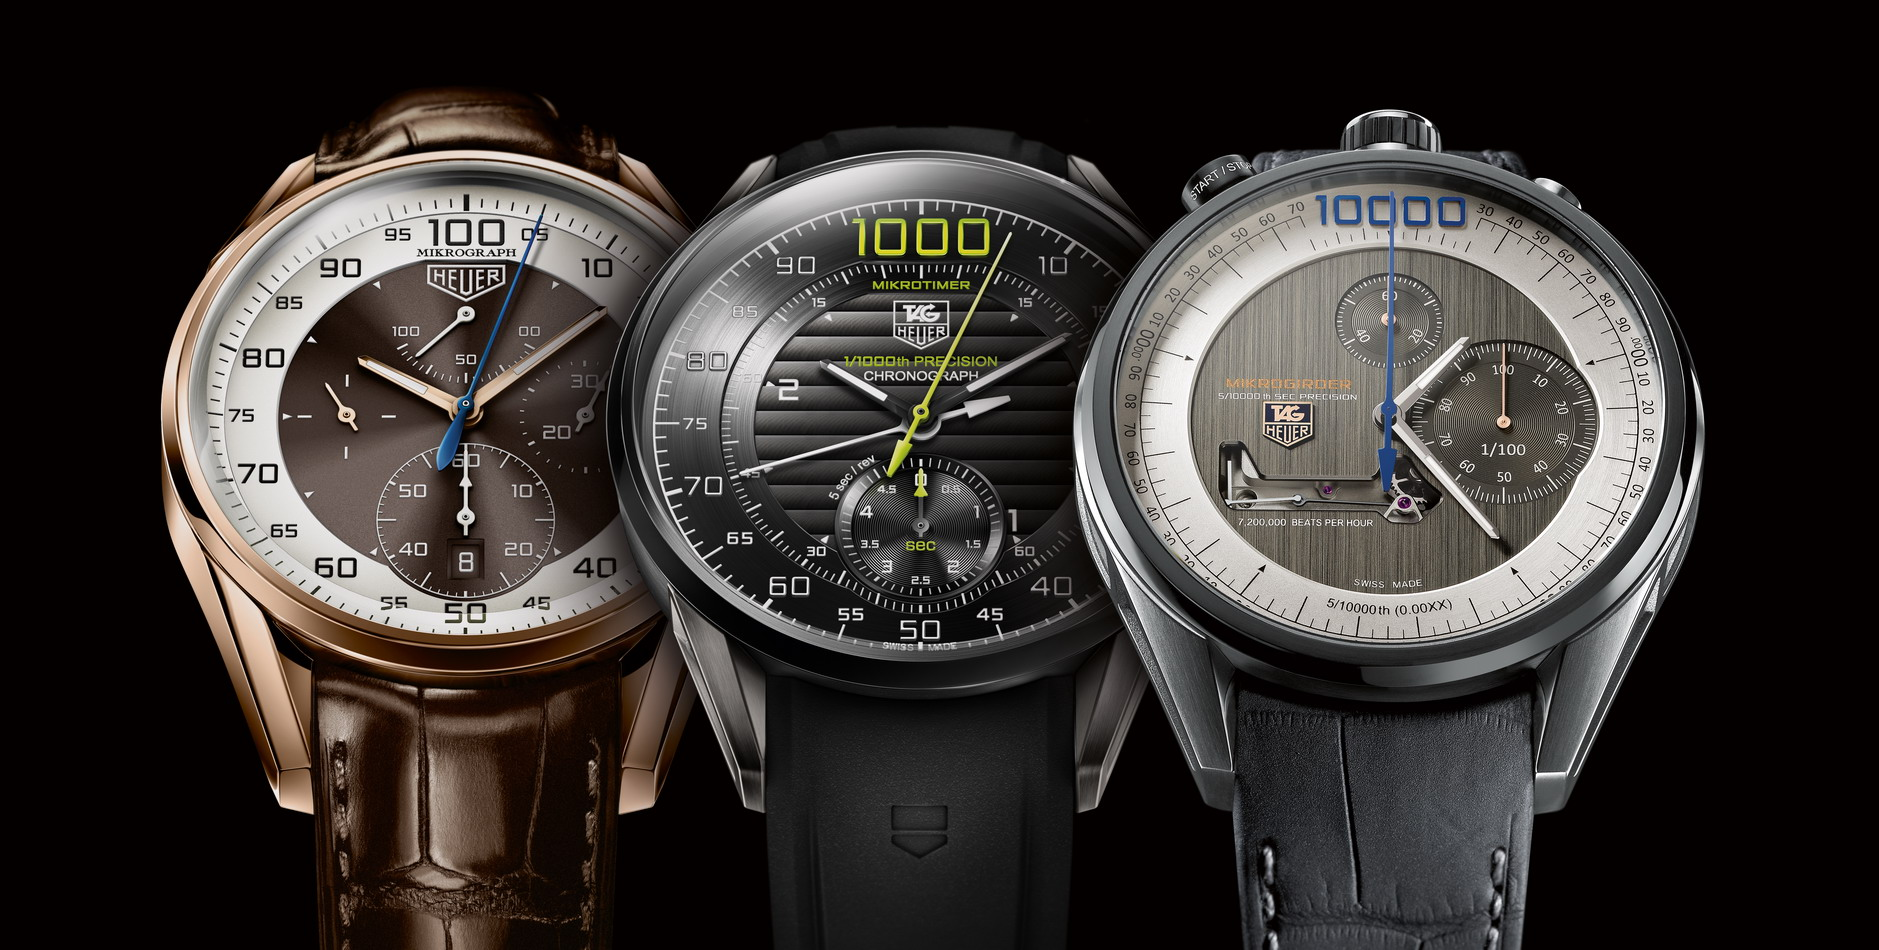 Famille Tag Heuer Chronographe Carrera Mikrograph